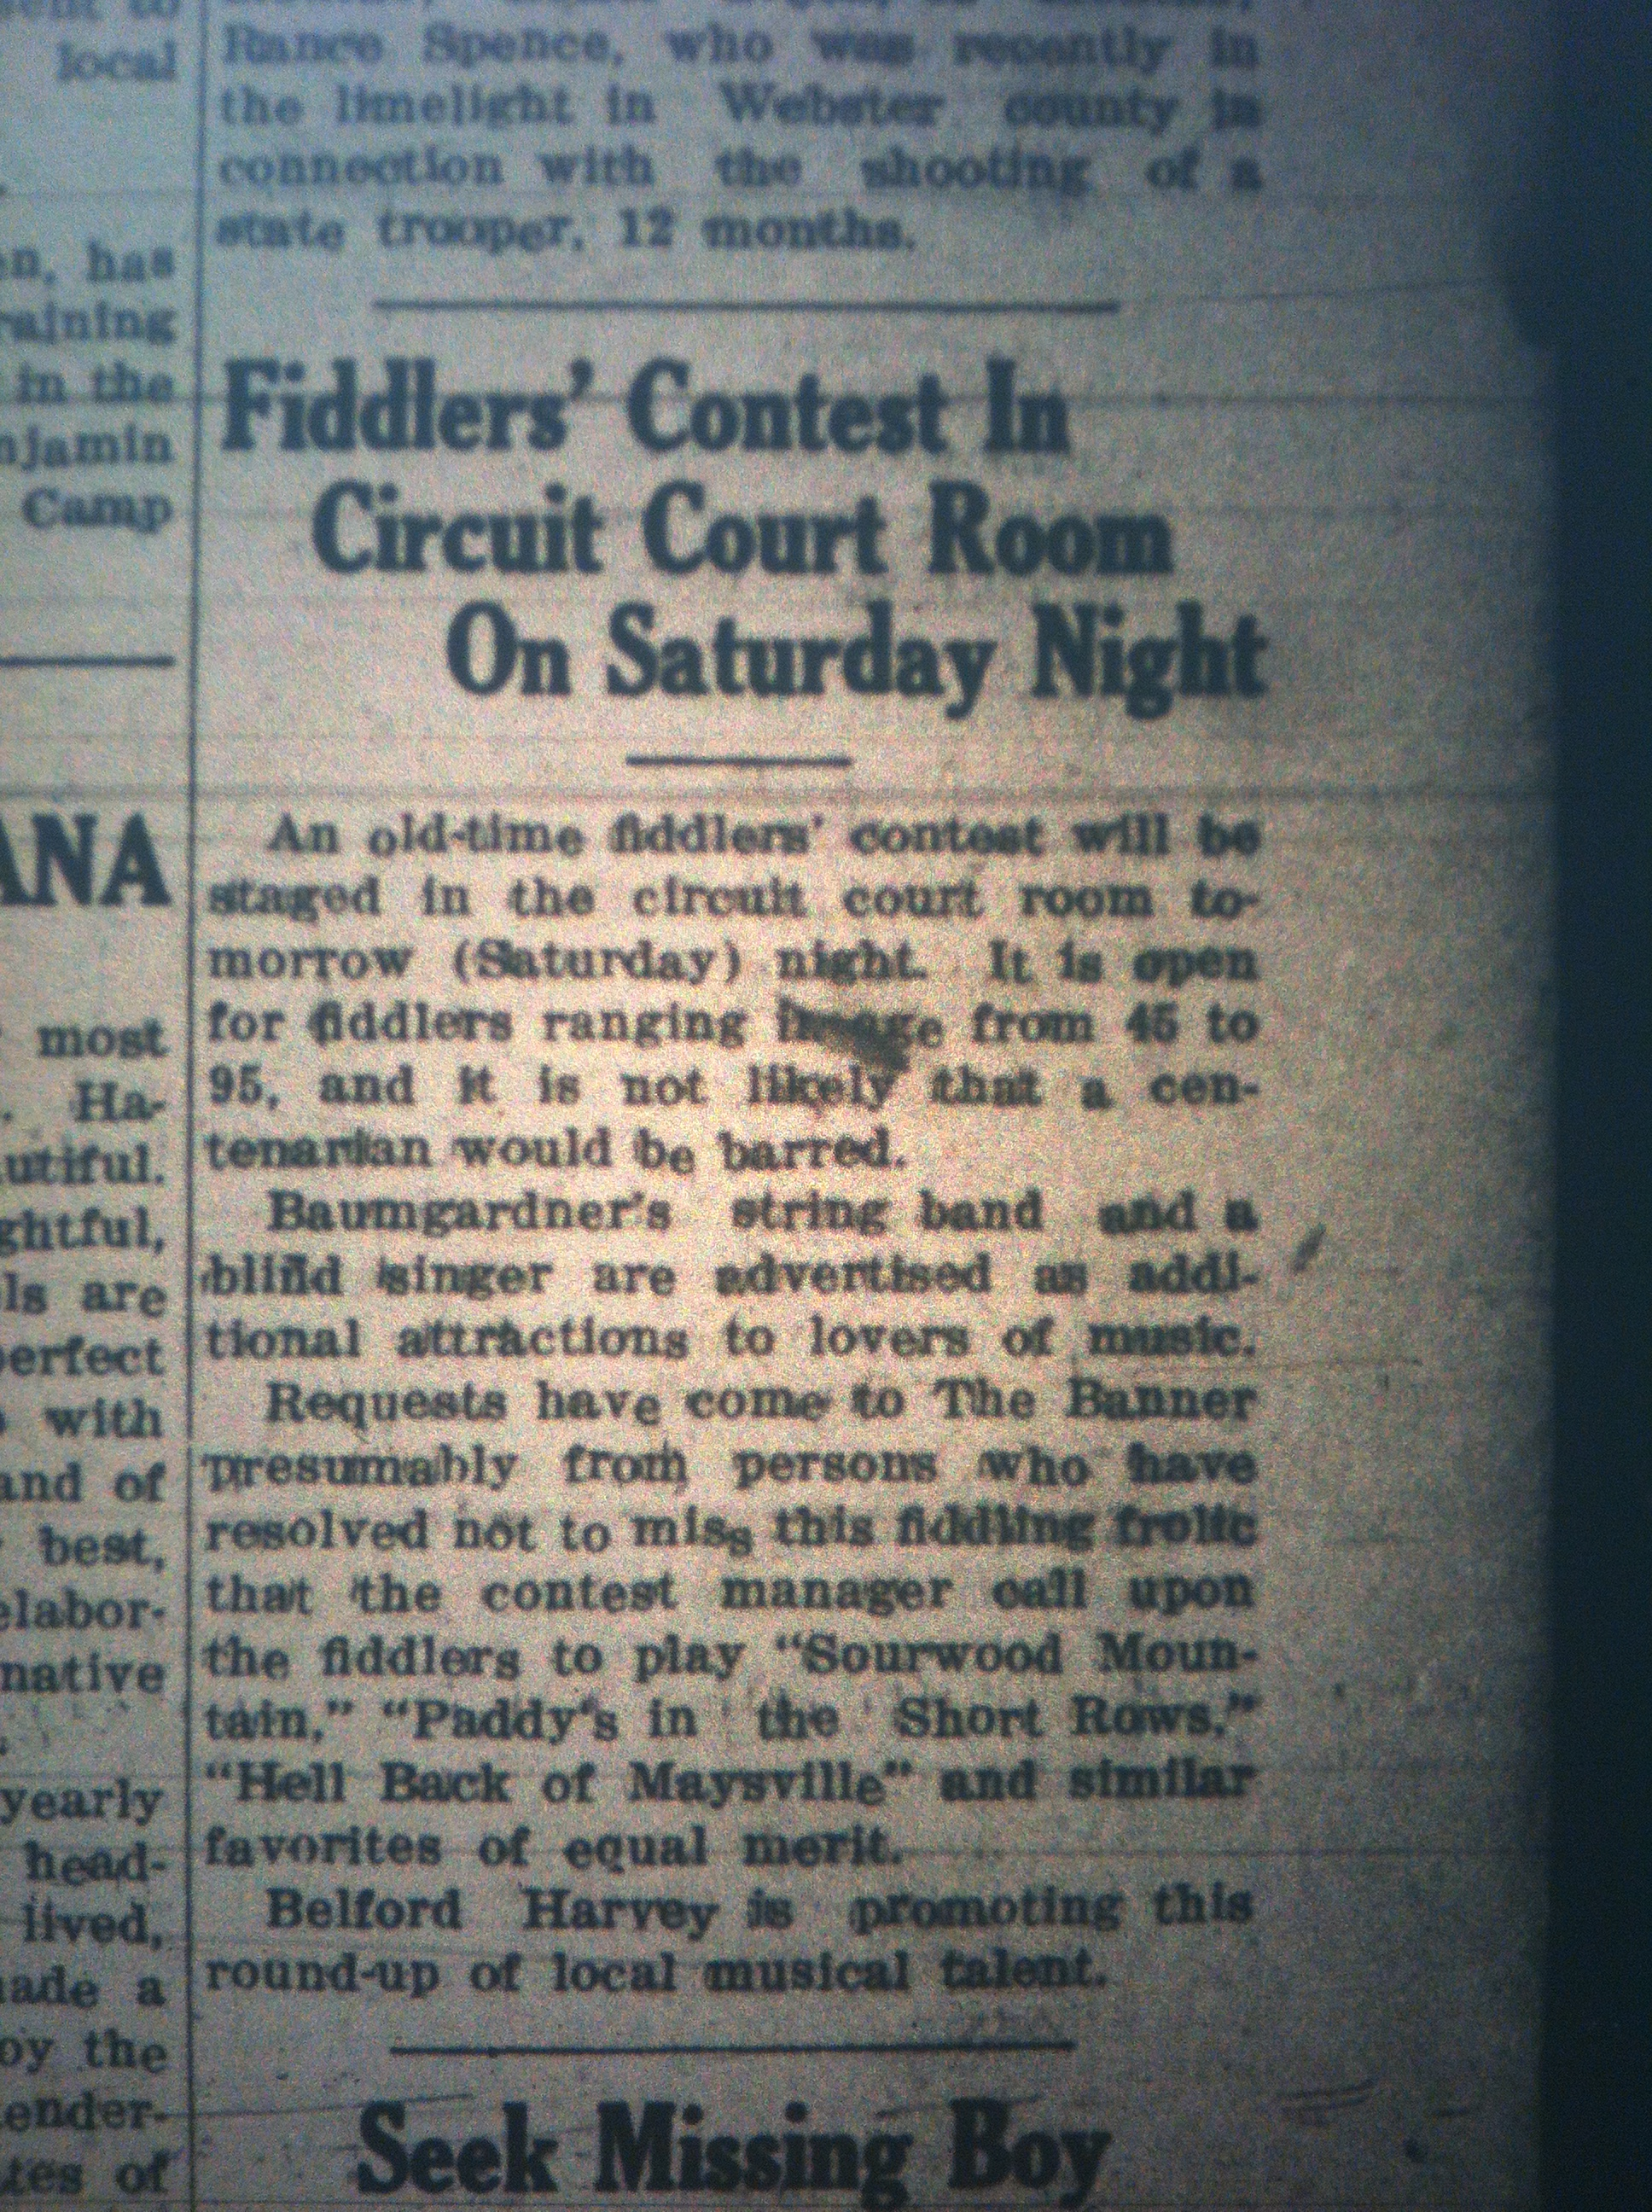 Fiddlers' Contest at Logan Circuit Court Room LB 04.29.1927.JPG